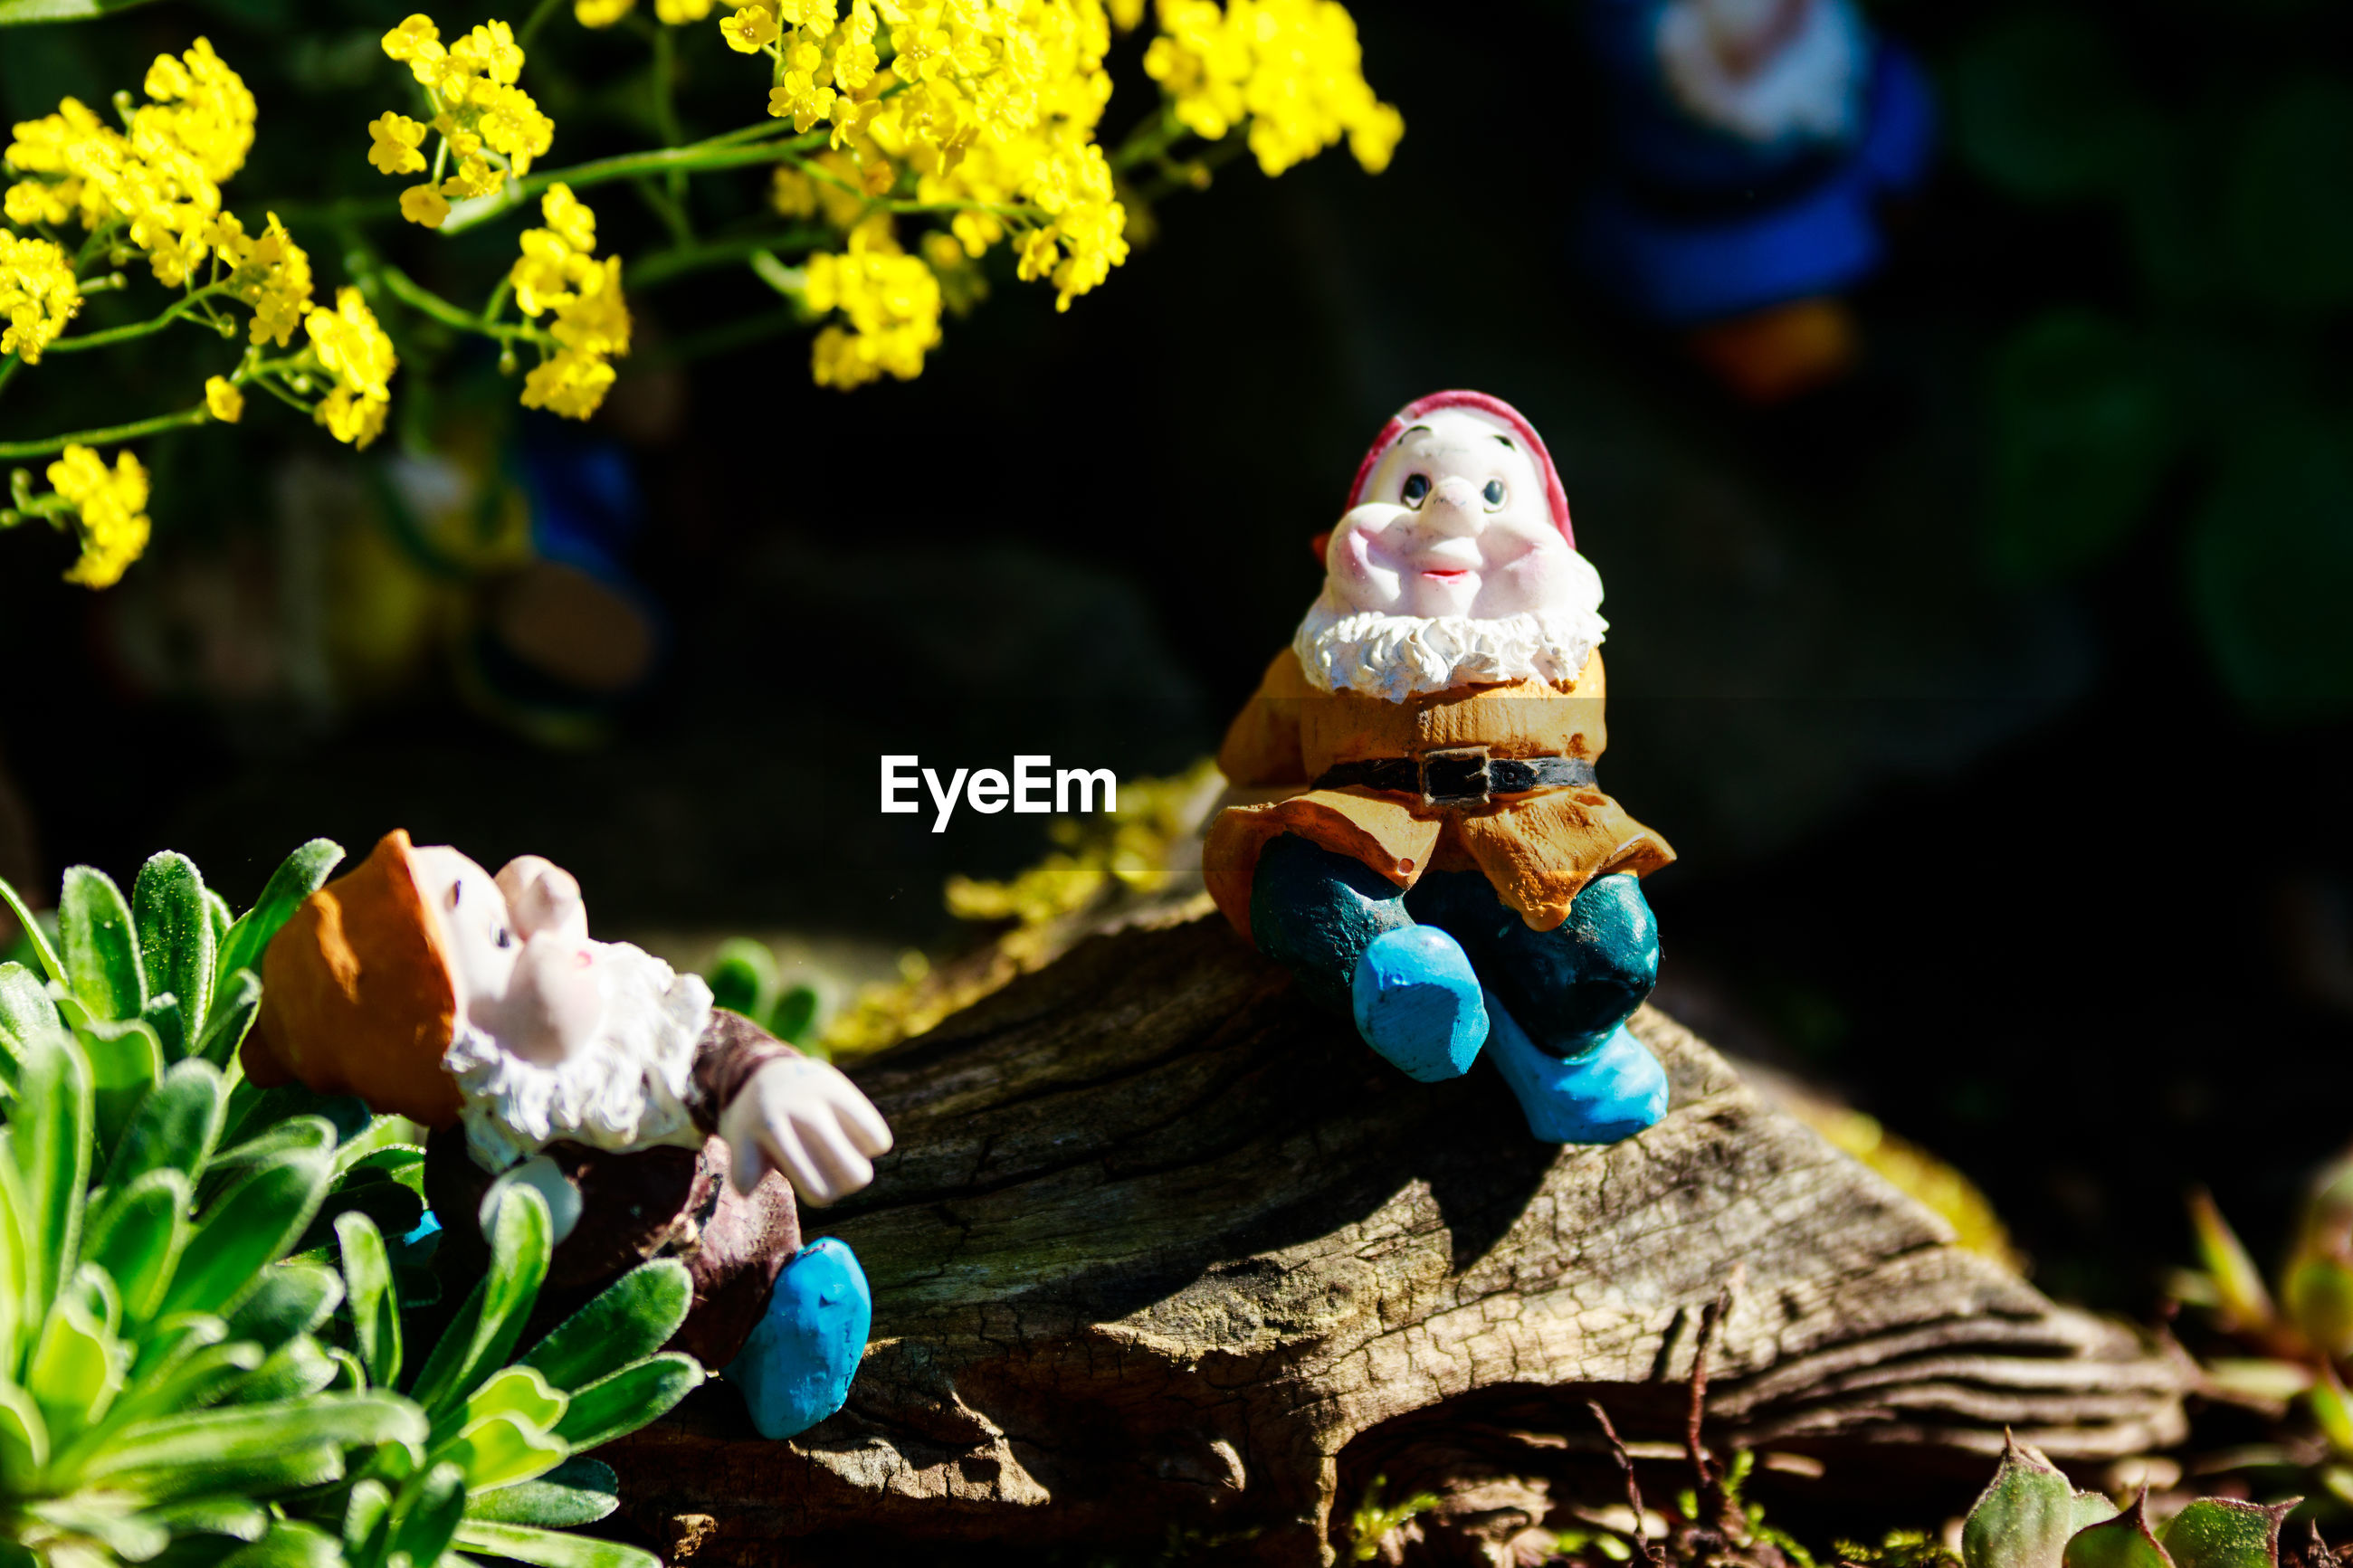 CLOSE-UP OF FIGURINE WITH TOY AND PLANTS